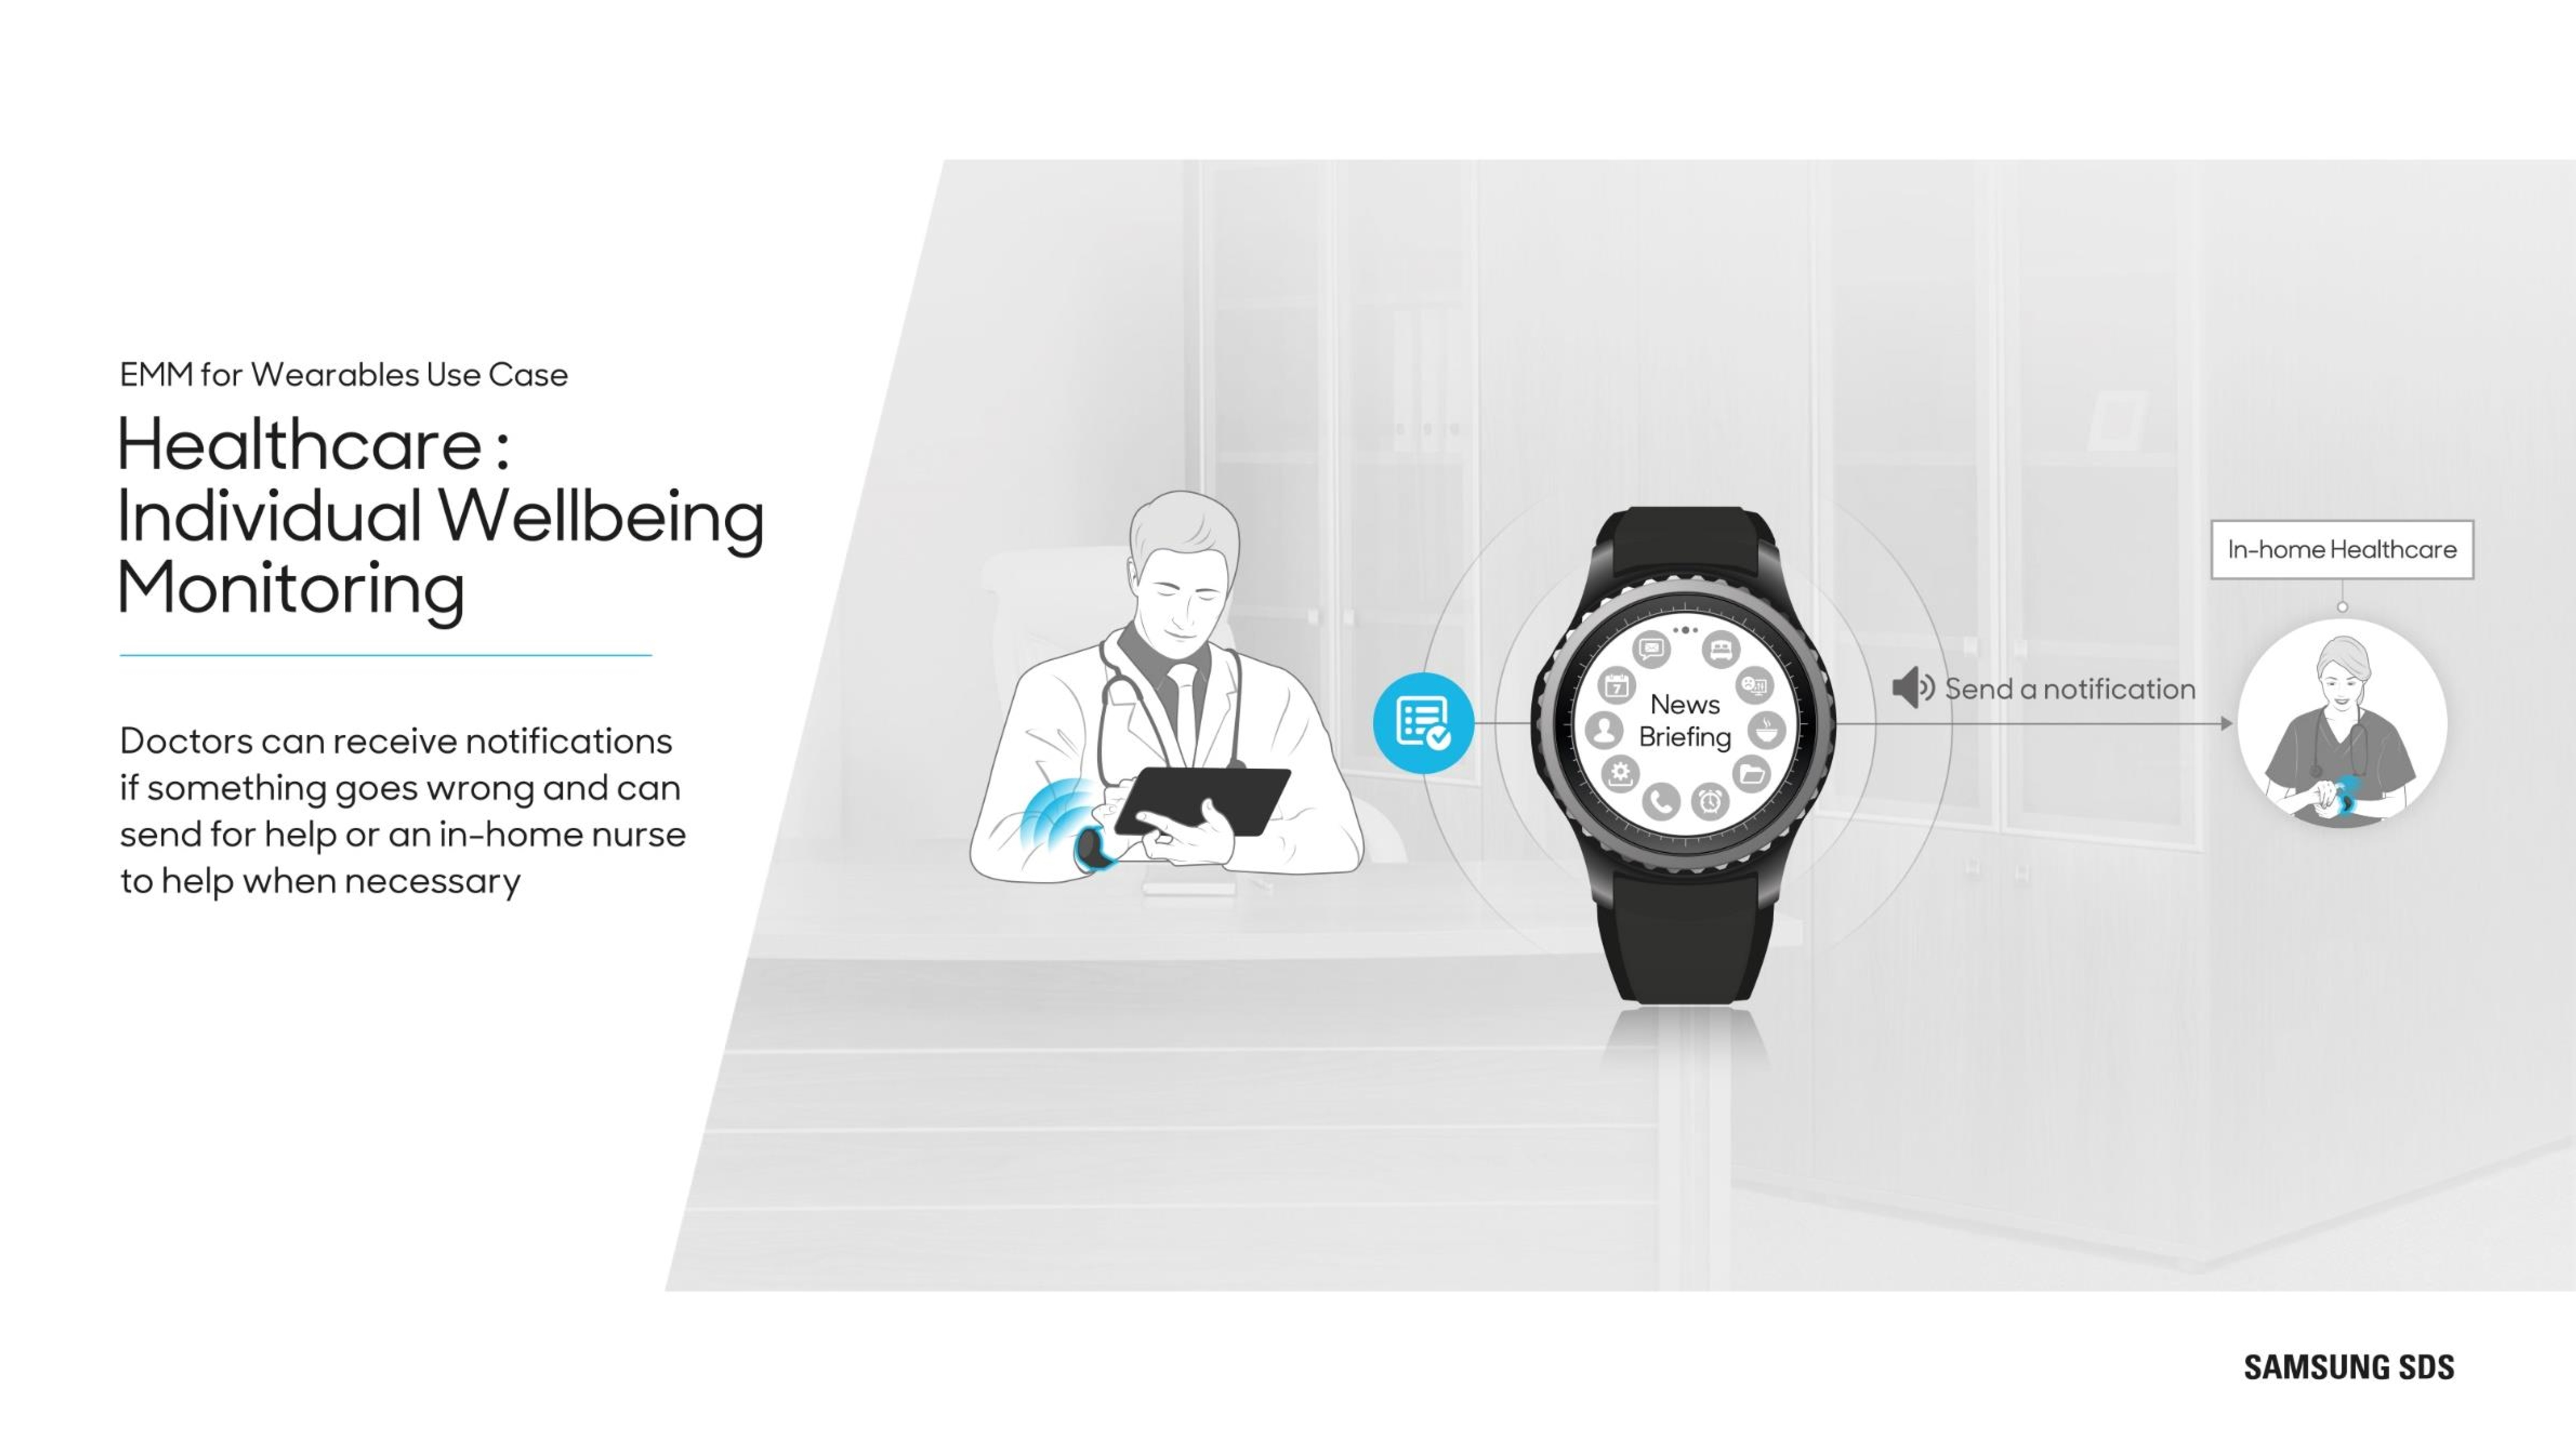 Wearables in Healthcare Doctors can receive notifications if something goes wrong and can send for help or an in-home nurse to help when necessary